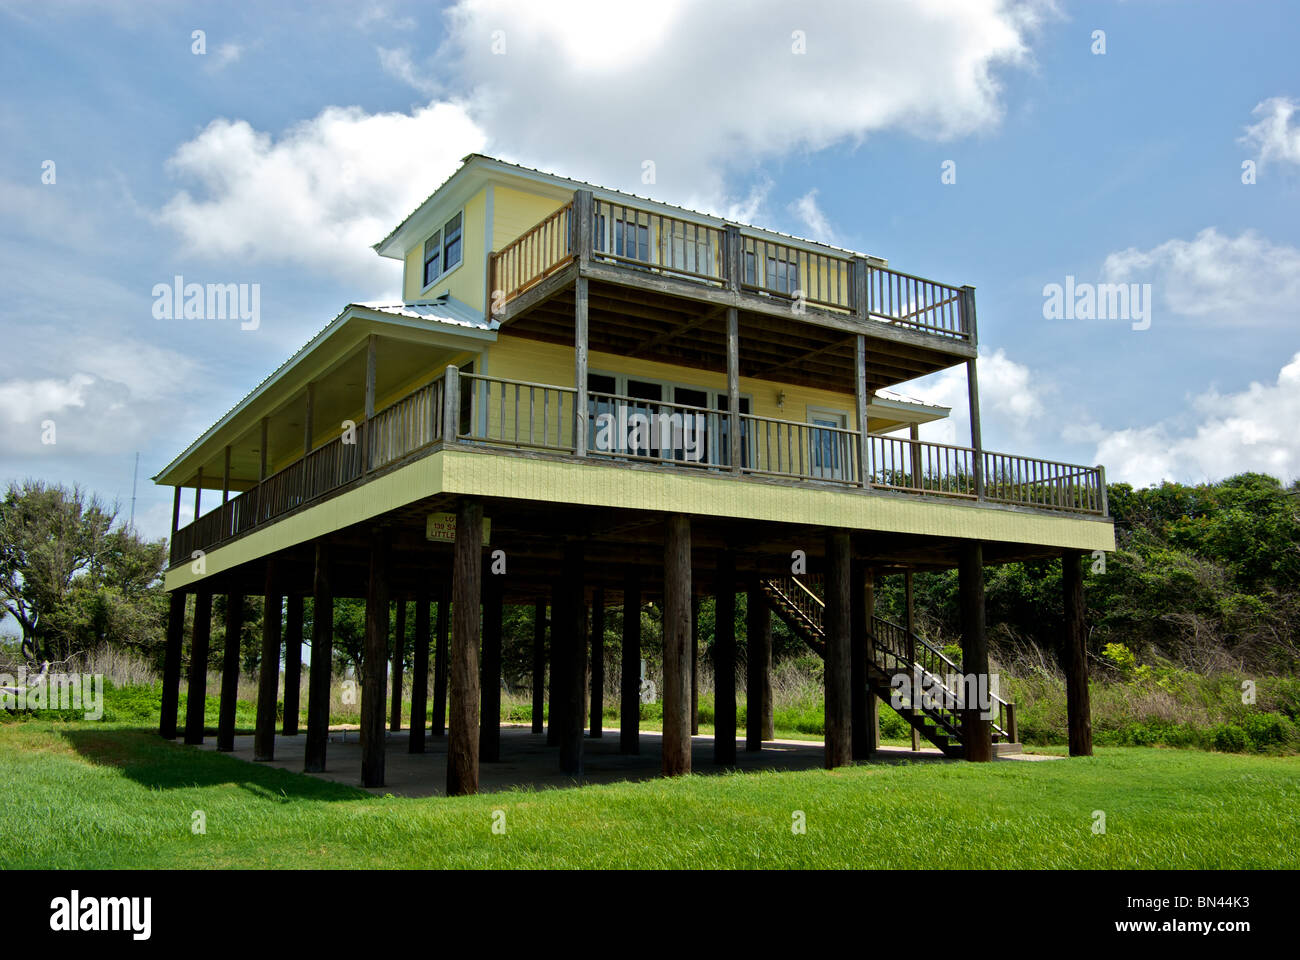 Gulf coast beach house raised on stilts for hurricane storm surge